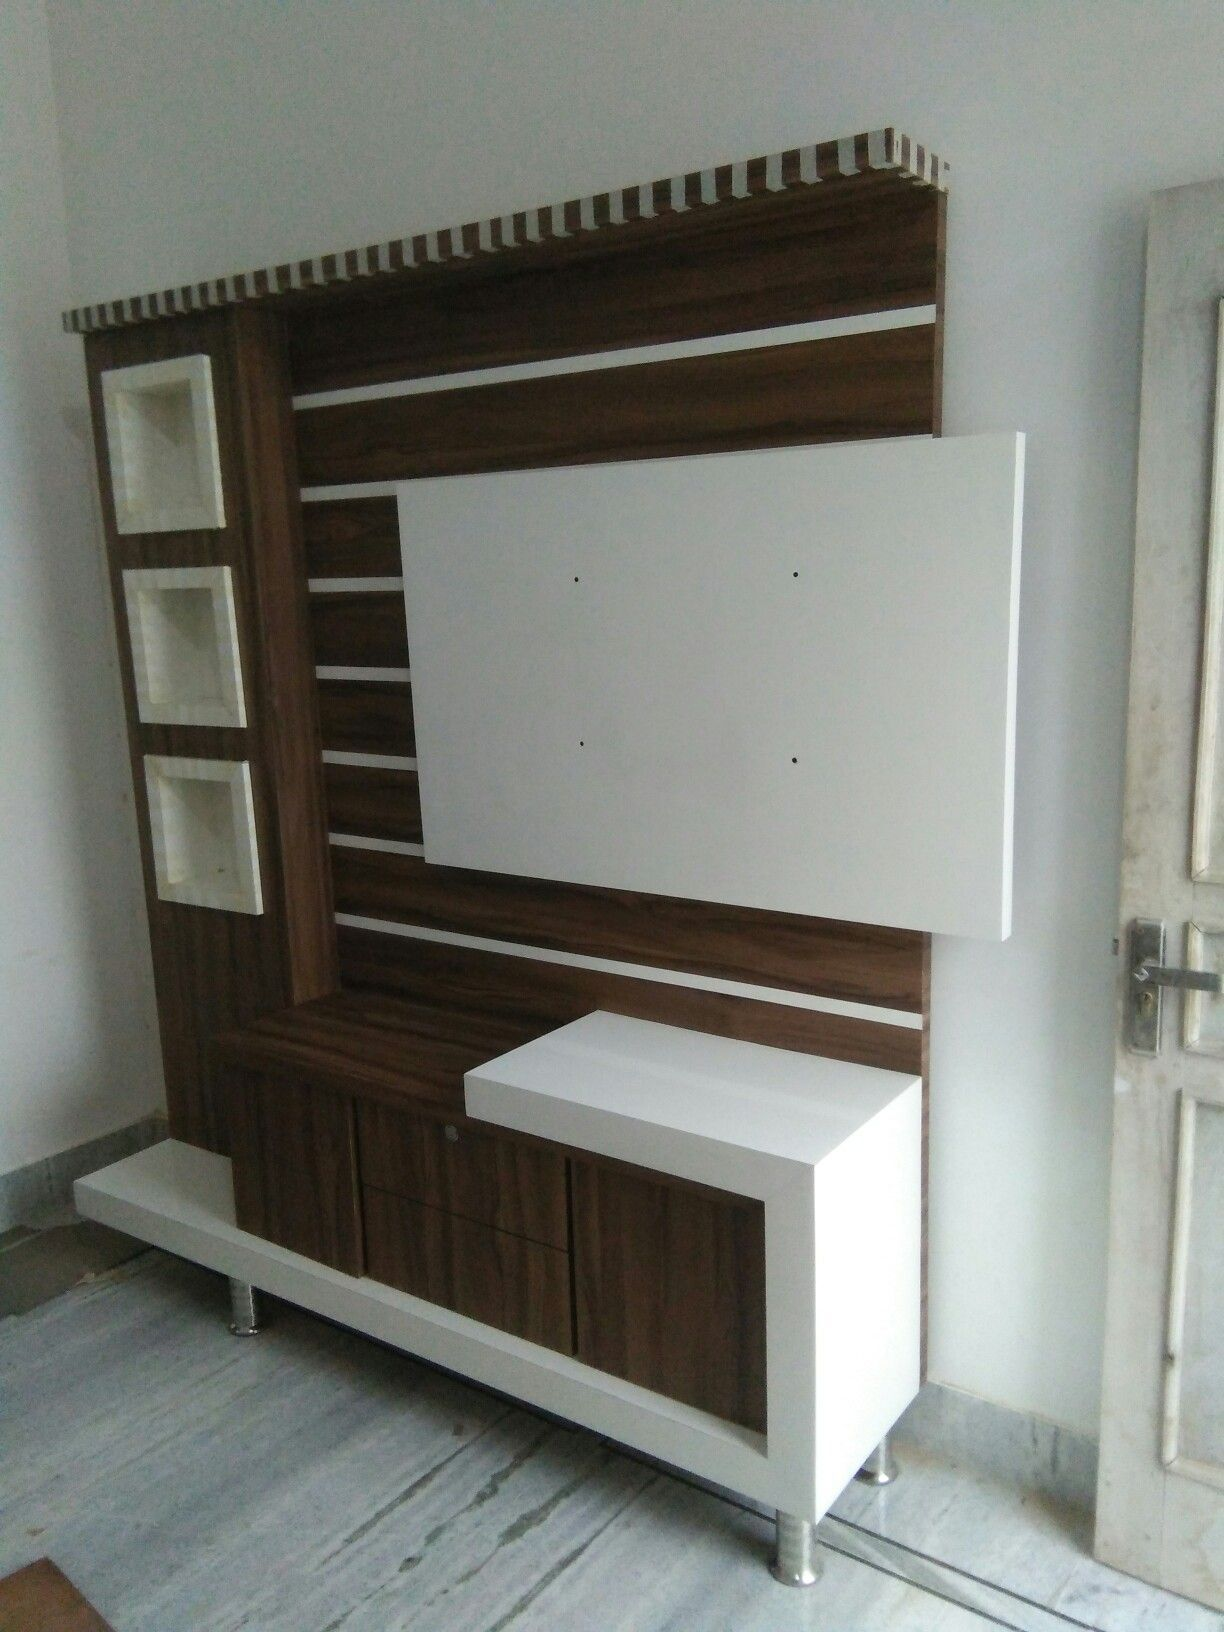 Lcd Tv Furnitures Designs Ideas: Simple And Beautiful In 2020